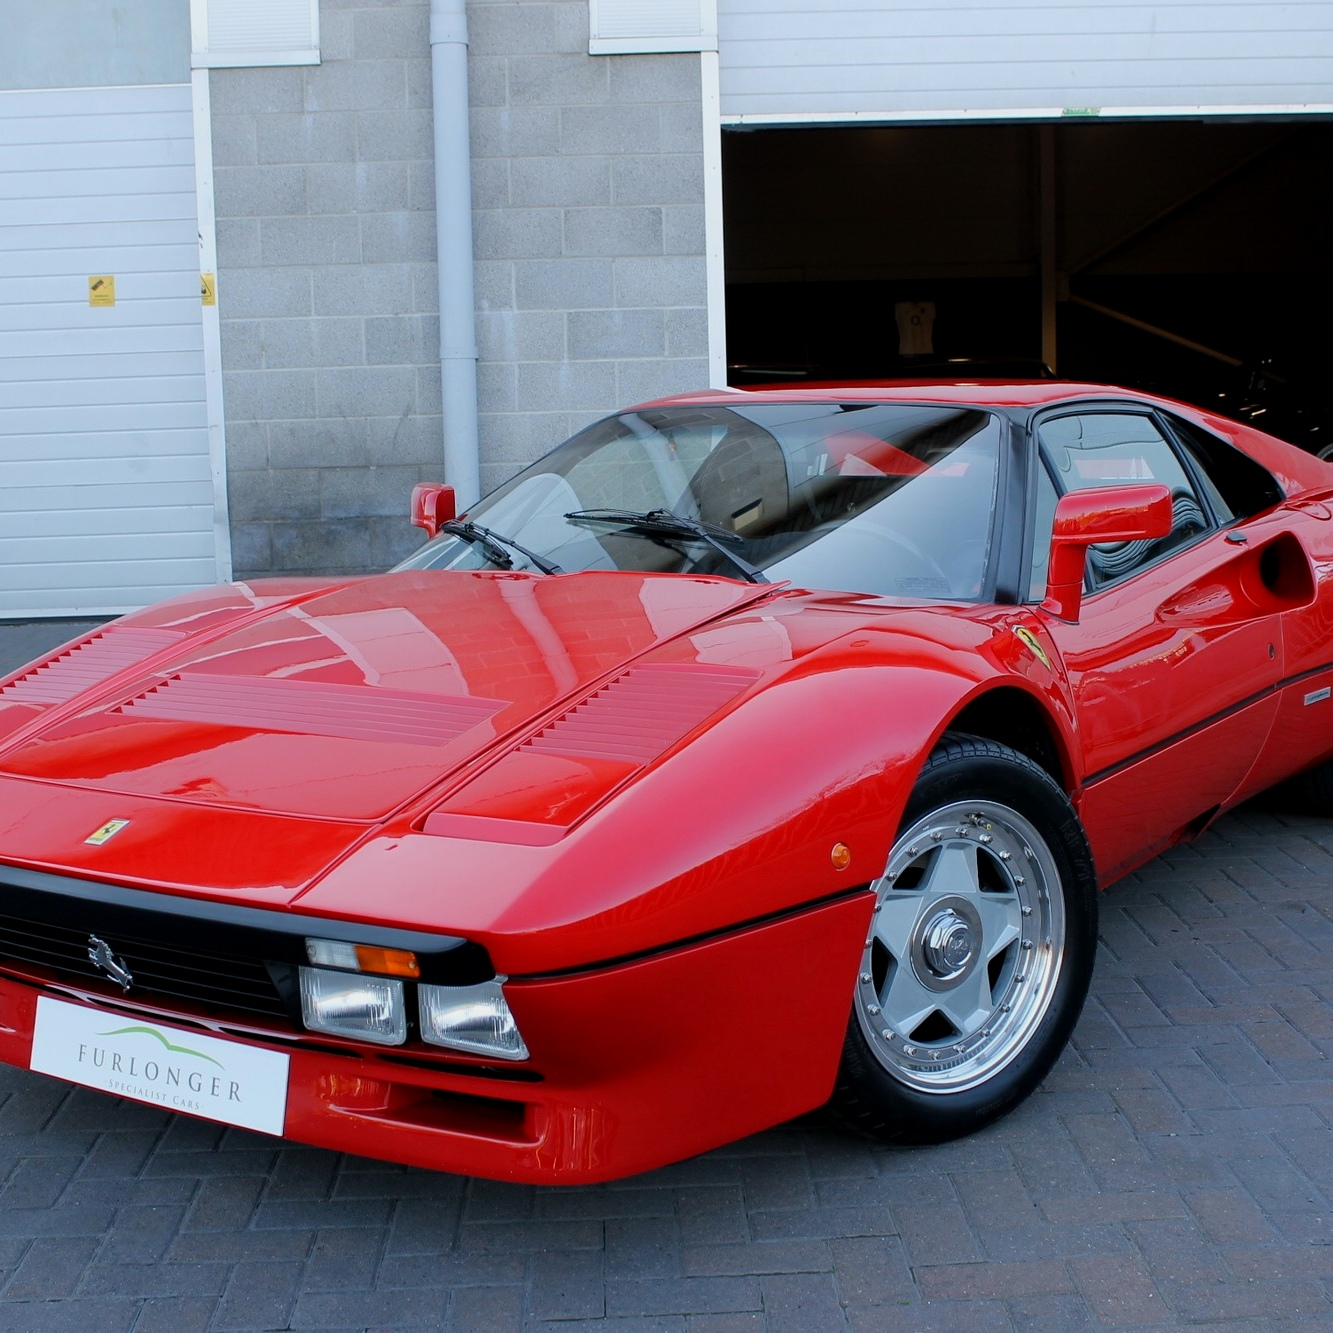 The most expensive Ferraris in the world1991 Ferrari F40, approx, US$1,873,466.